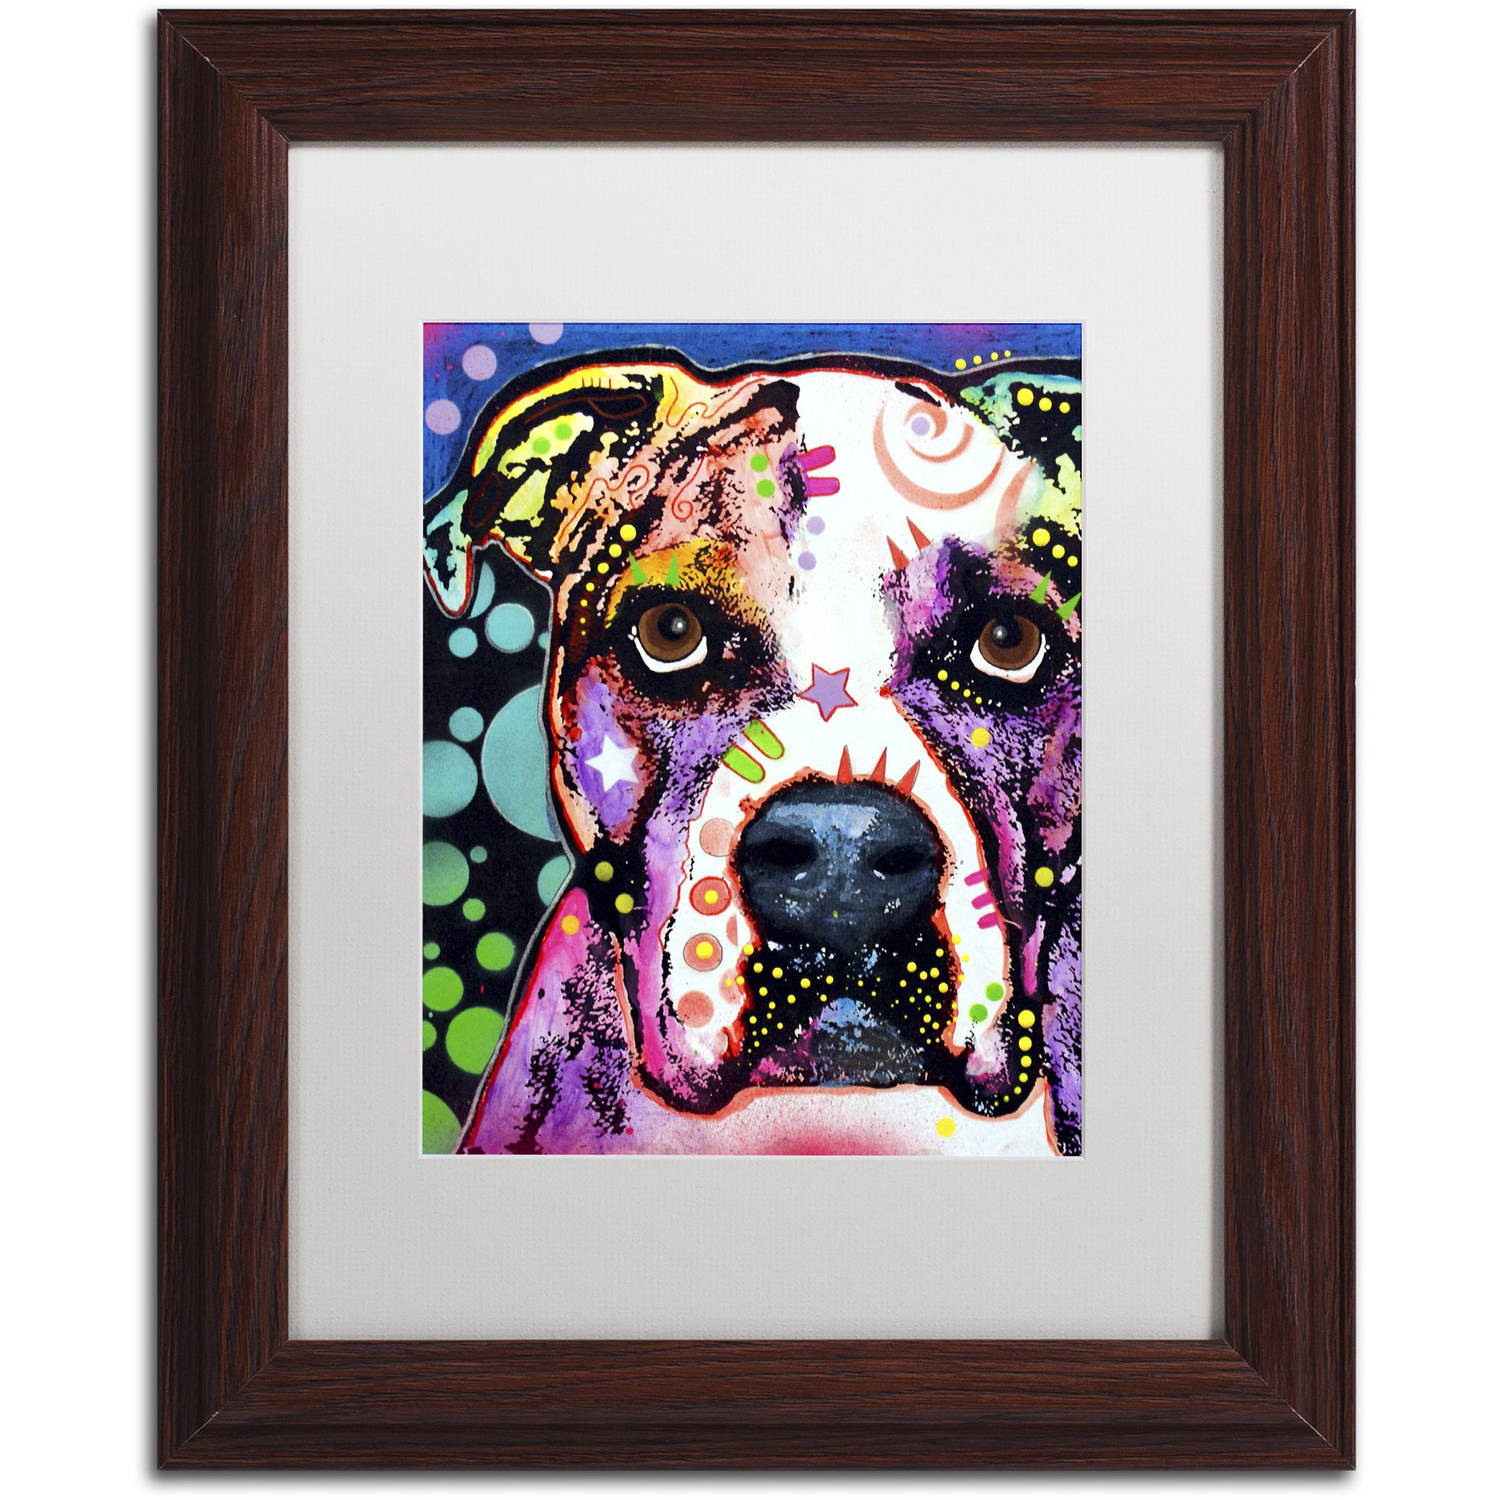 "Trademark Fine Art ""American Bulldog II"" Canvas Art by Dean Russo, White Matte, Wood Frame"